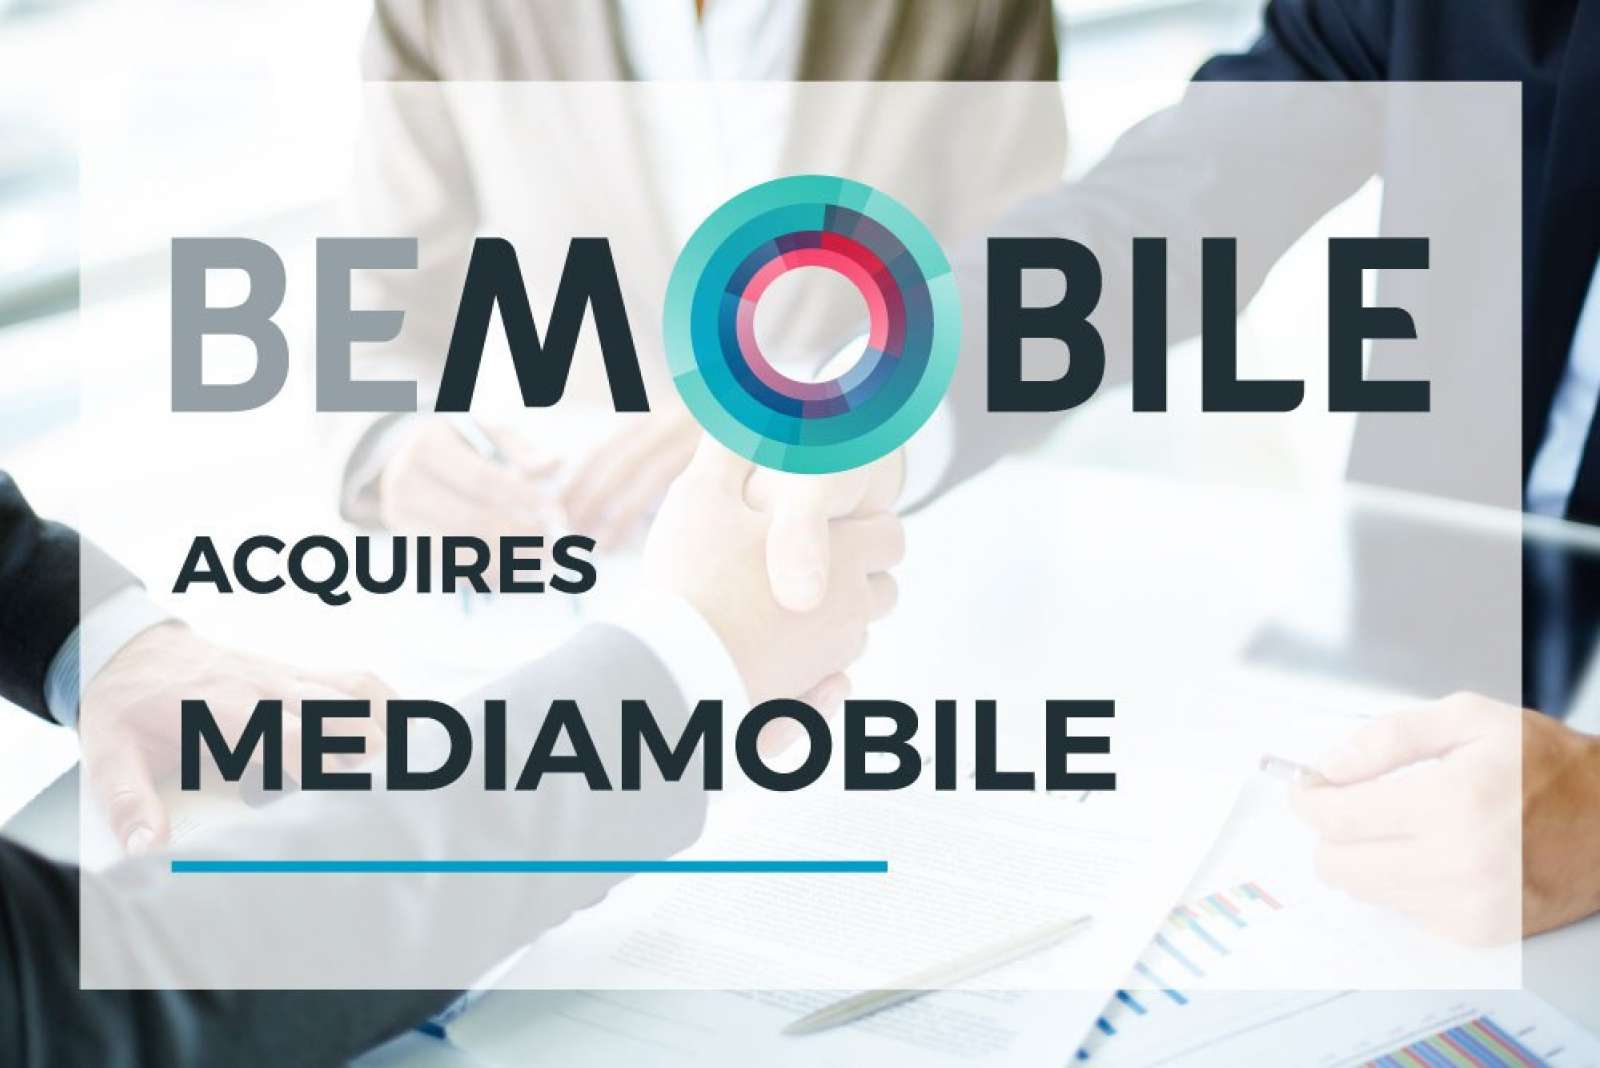 Be Mobile acquires Mediamobile